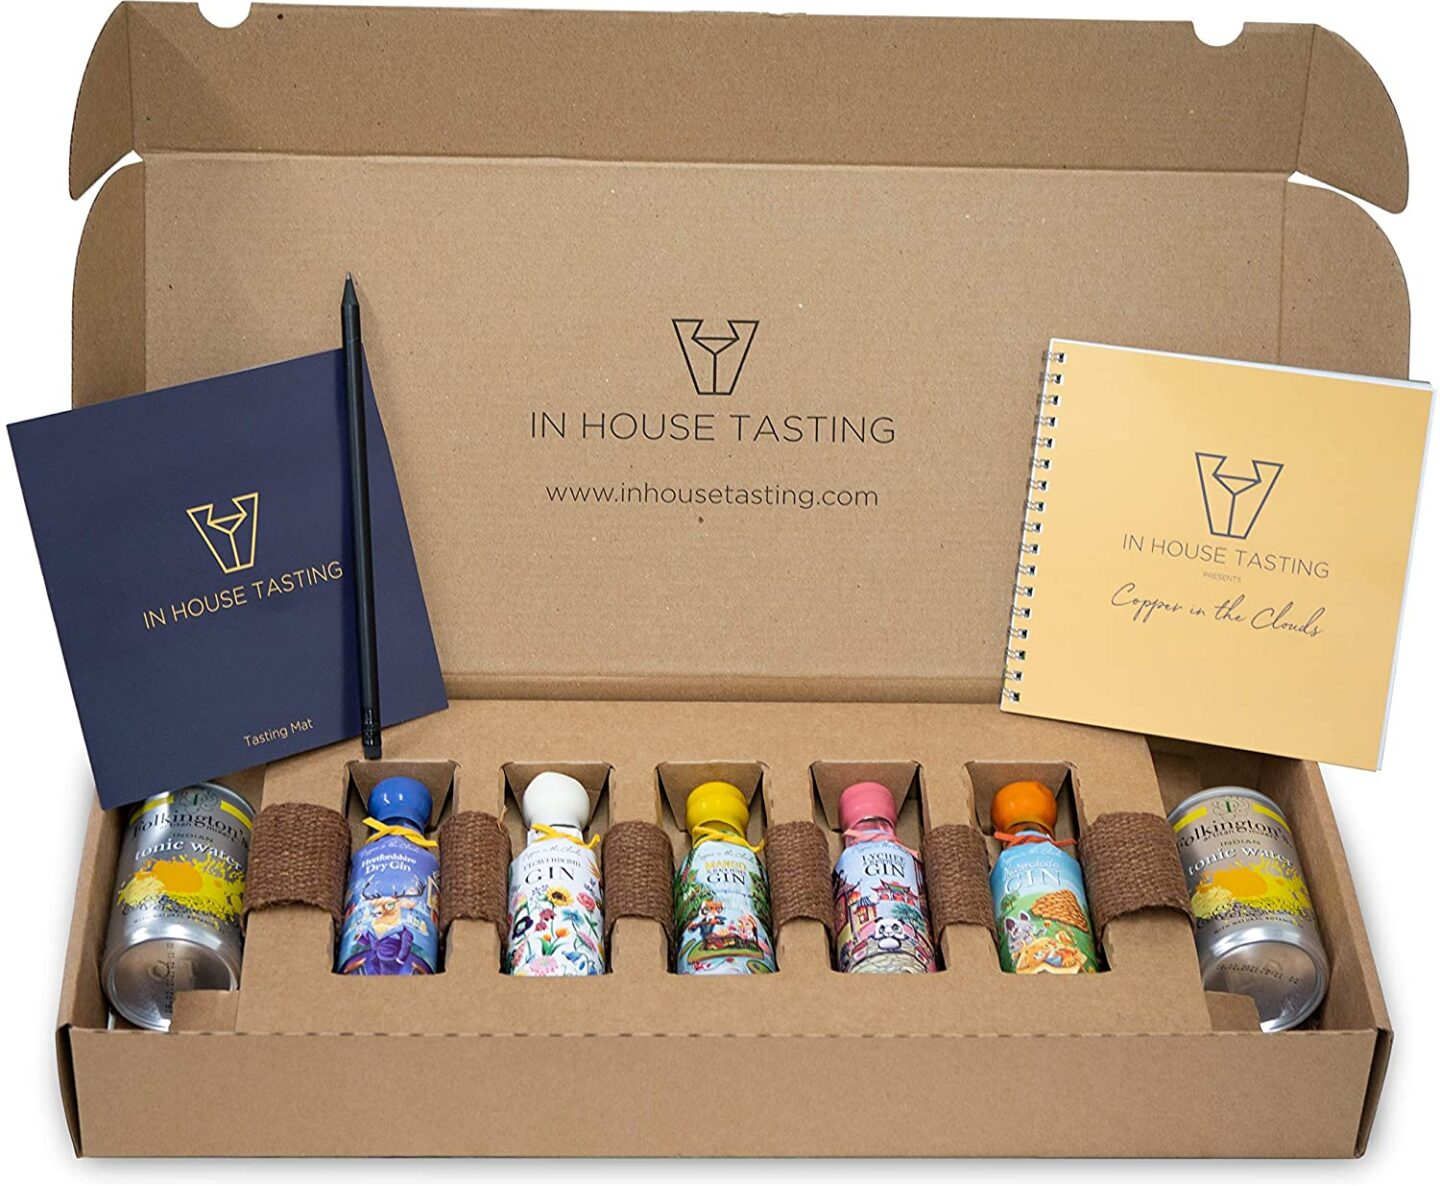 A box containing a gin tasting kit - small gin samples and mixers